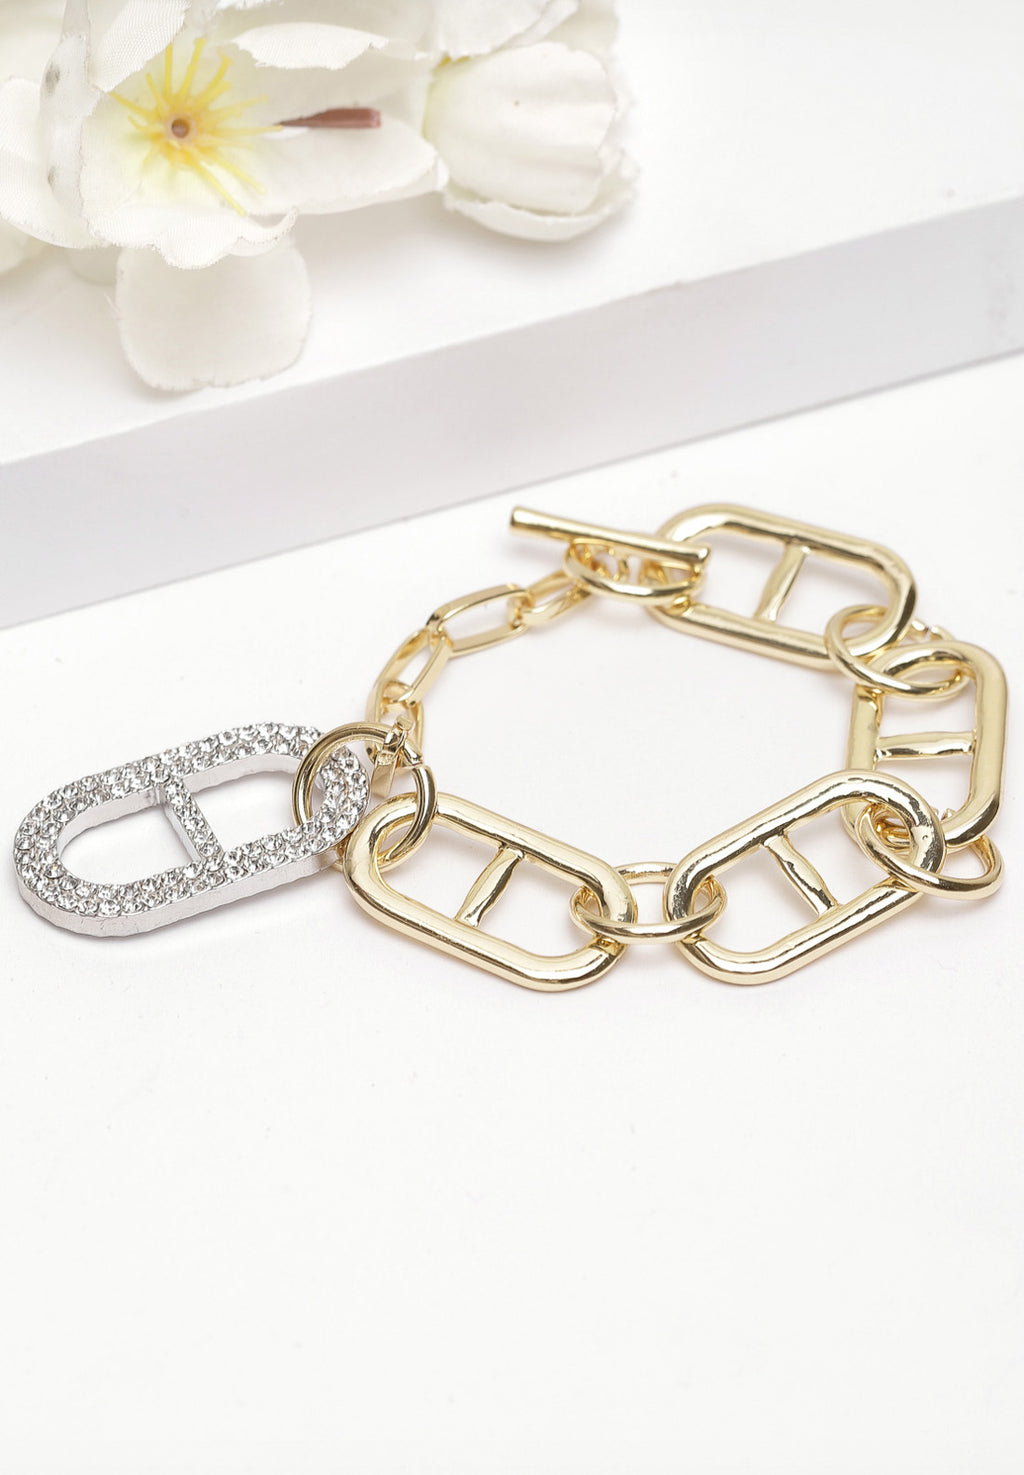 Avant-Garde Paris Gold Chain Crystal Bracelet